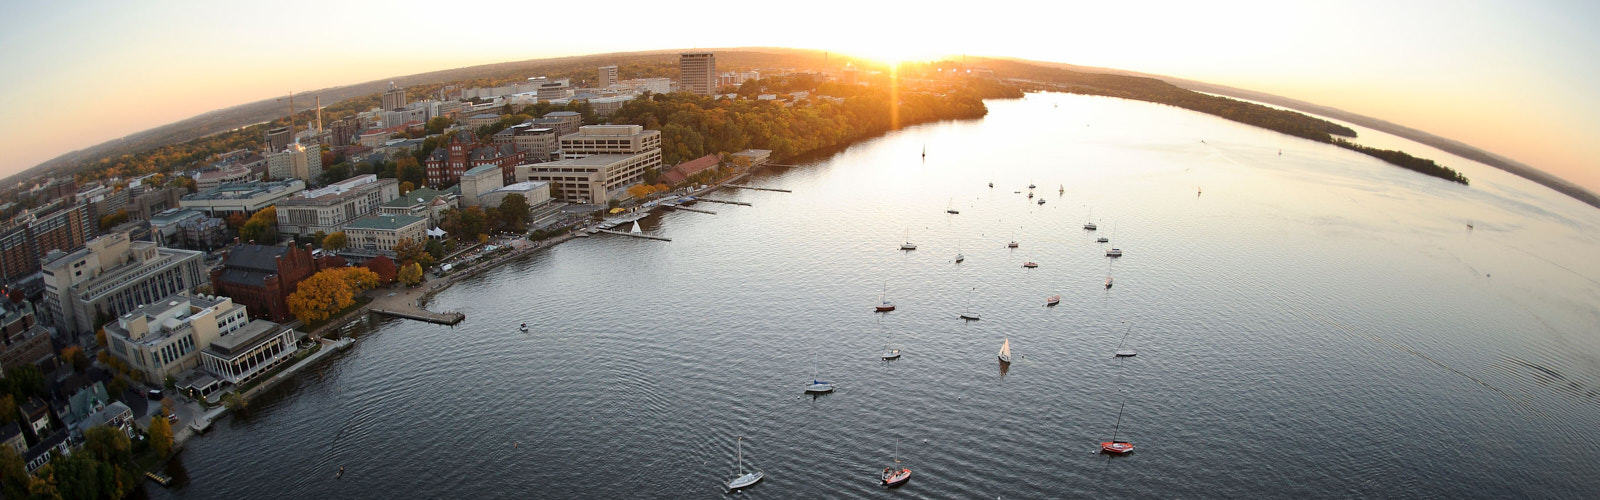 Boats on Lake Mendota looking to the sunrise